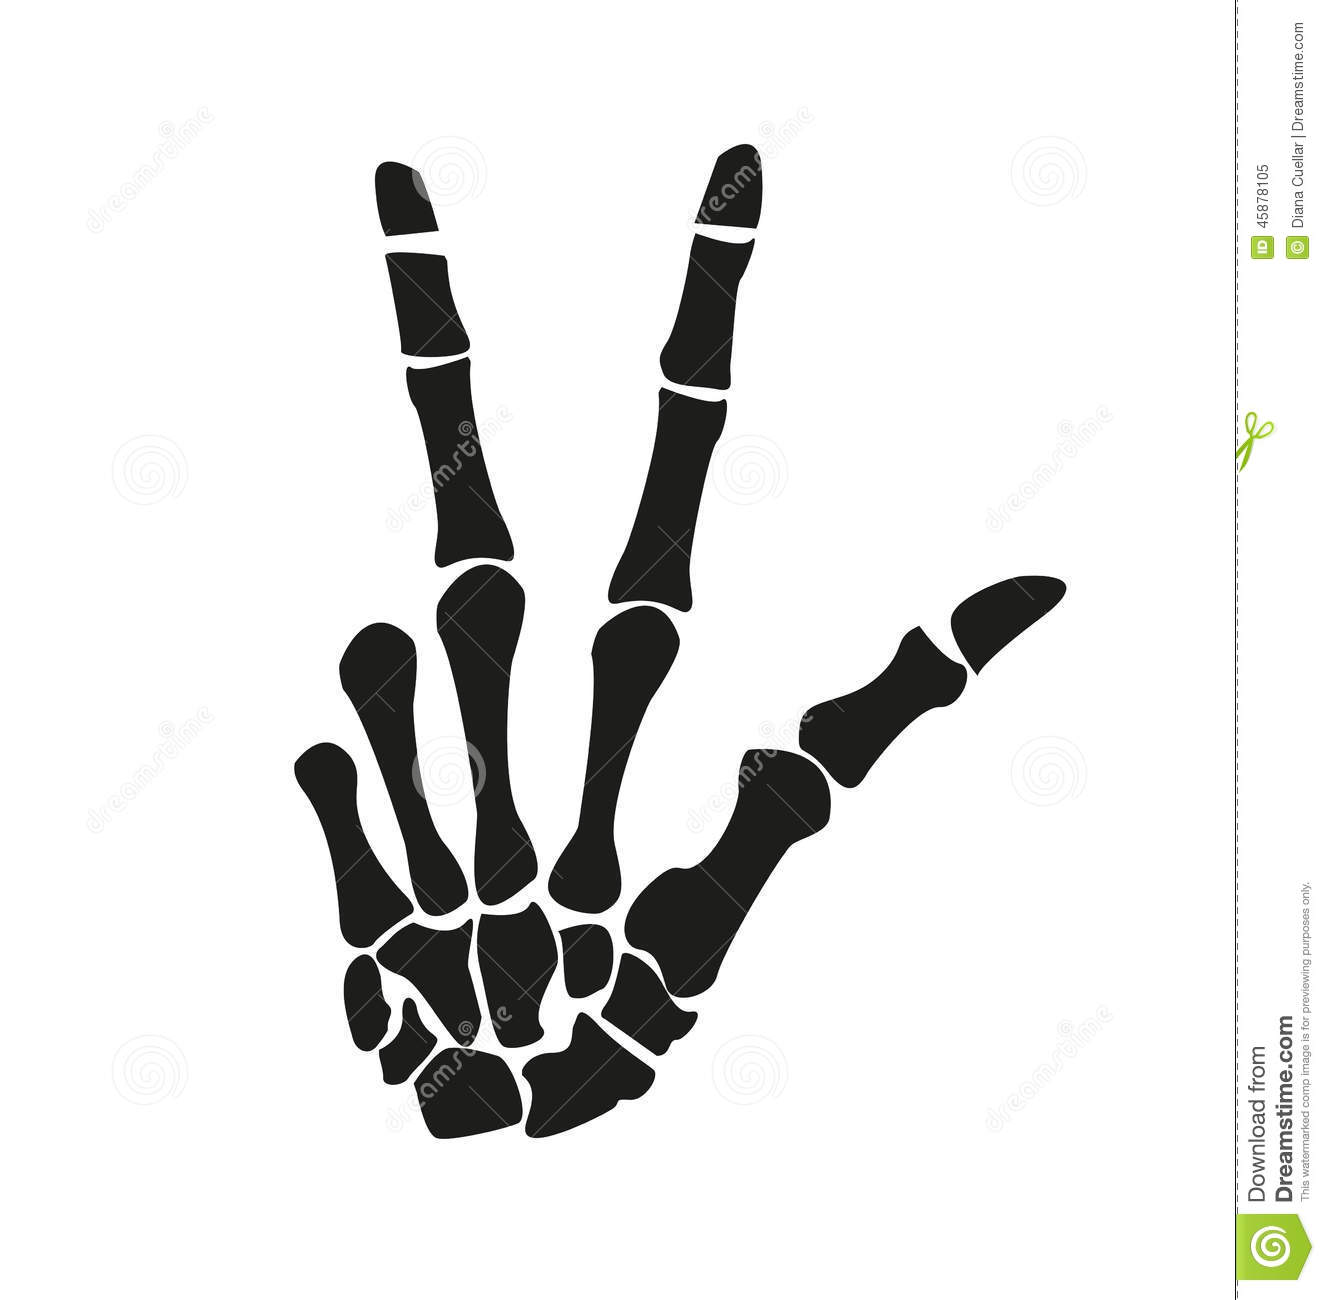 Skeleton hand stock vector. Illustration of anatomy, bones - 45878105